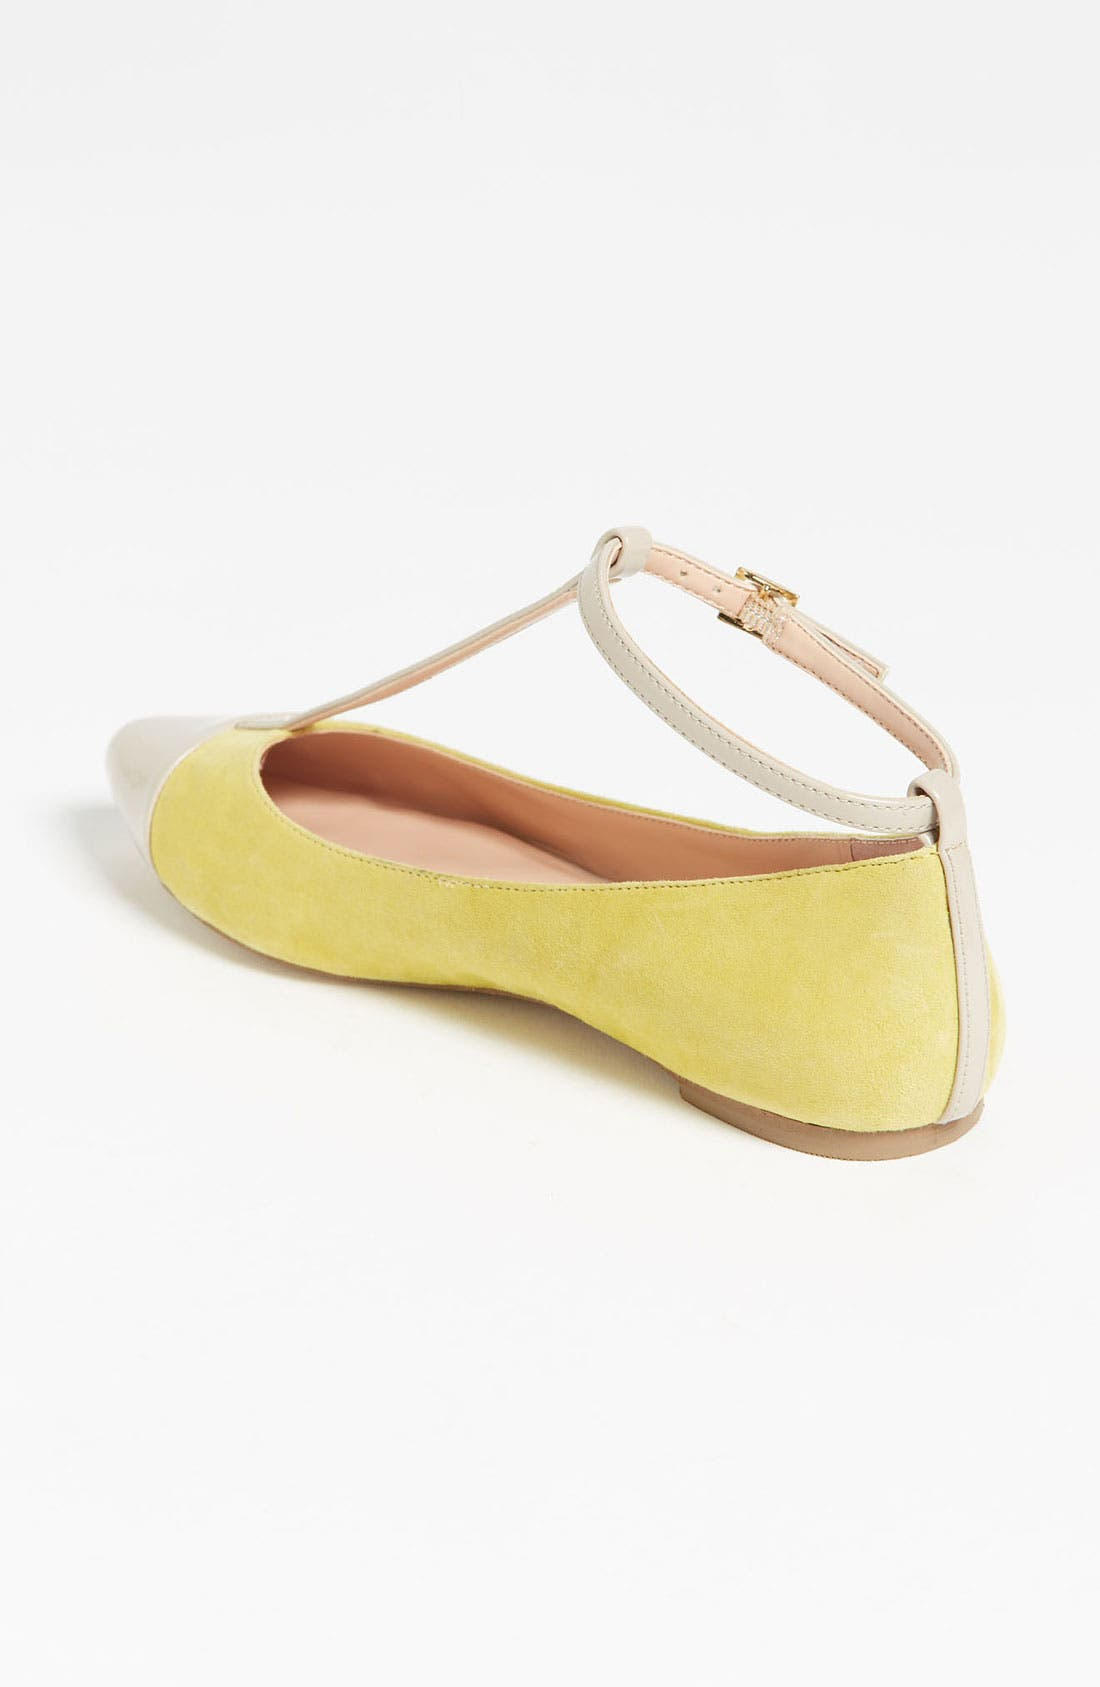 ,                             Julianne Hough for Sole Society 'Addy' Flat,                             Alternate thumbnail 31, color,                             330